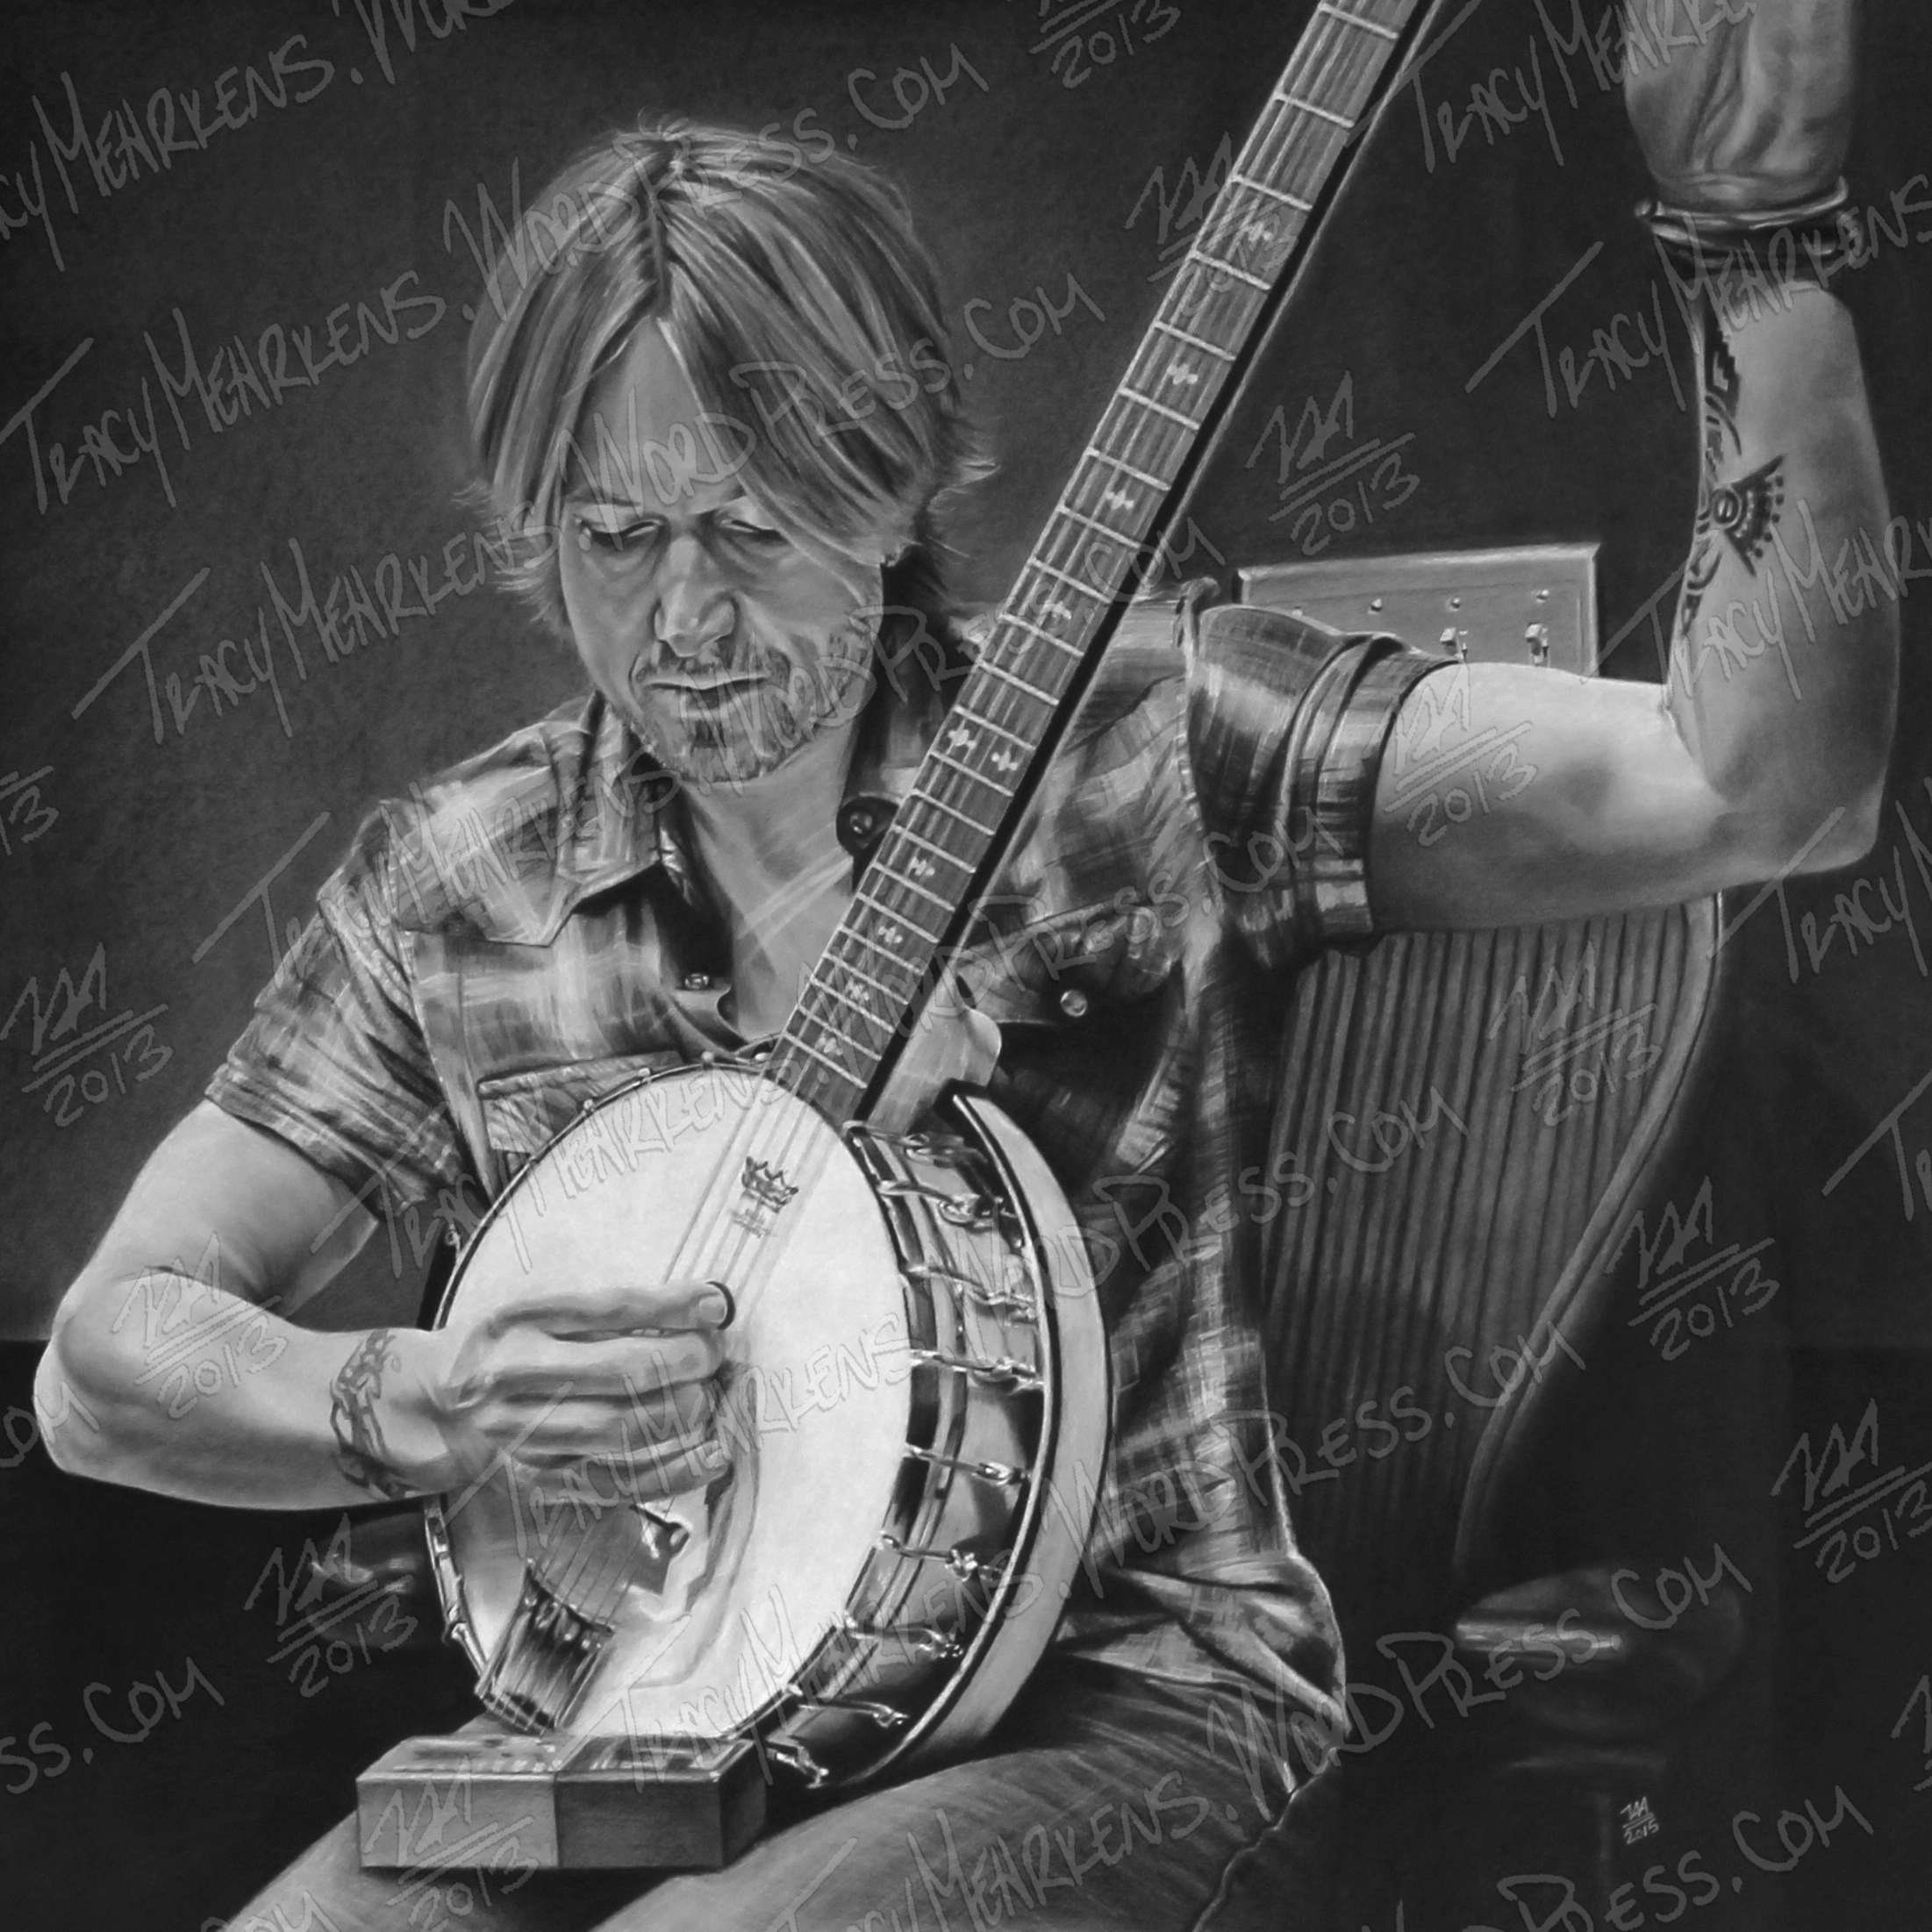 Keith Urban. Charcoal on Paper. 24x24 in. 2015.